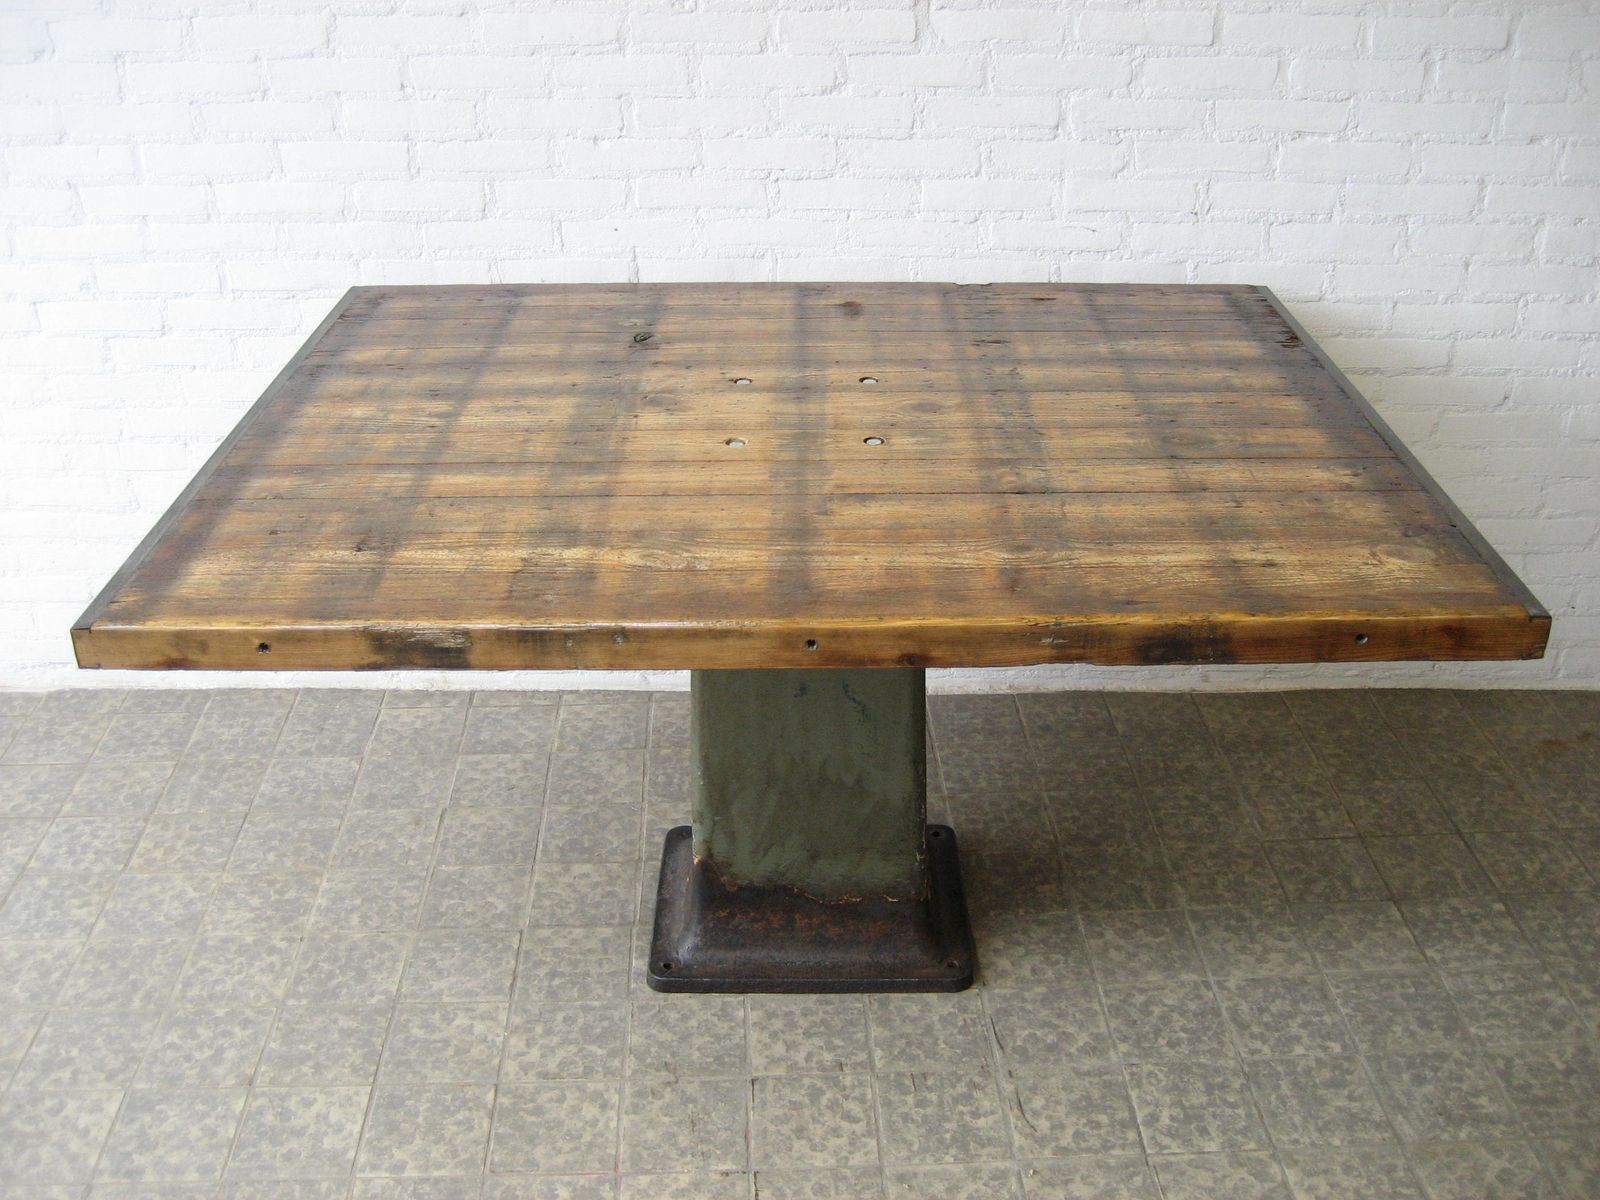 Vintage Industrial Cast Iron Dining Table for sale at Pamono : vintage industrial cast iron dining table 1 from www.pamono.com size 1600 x 1200 jpeg 206kB